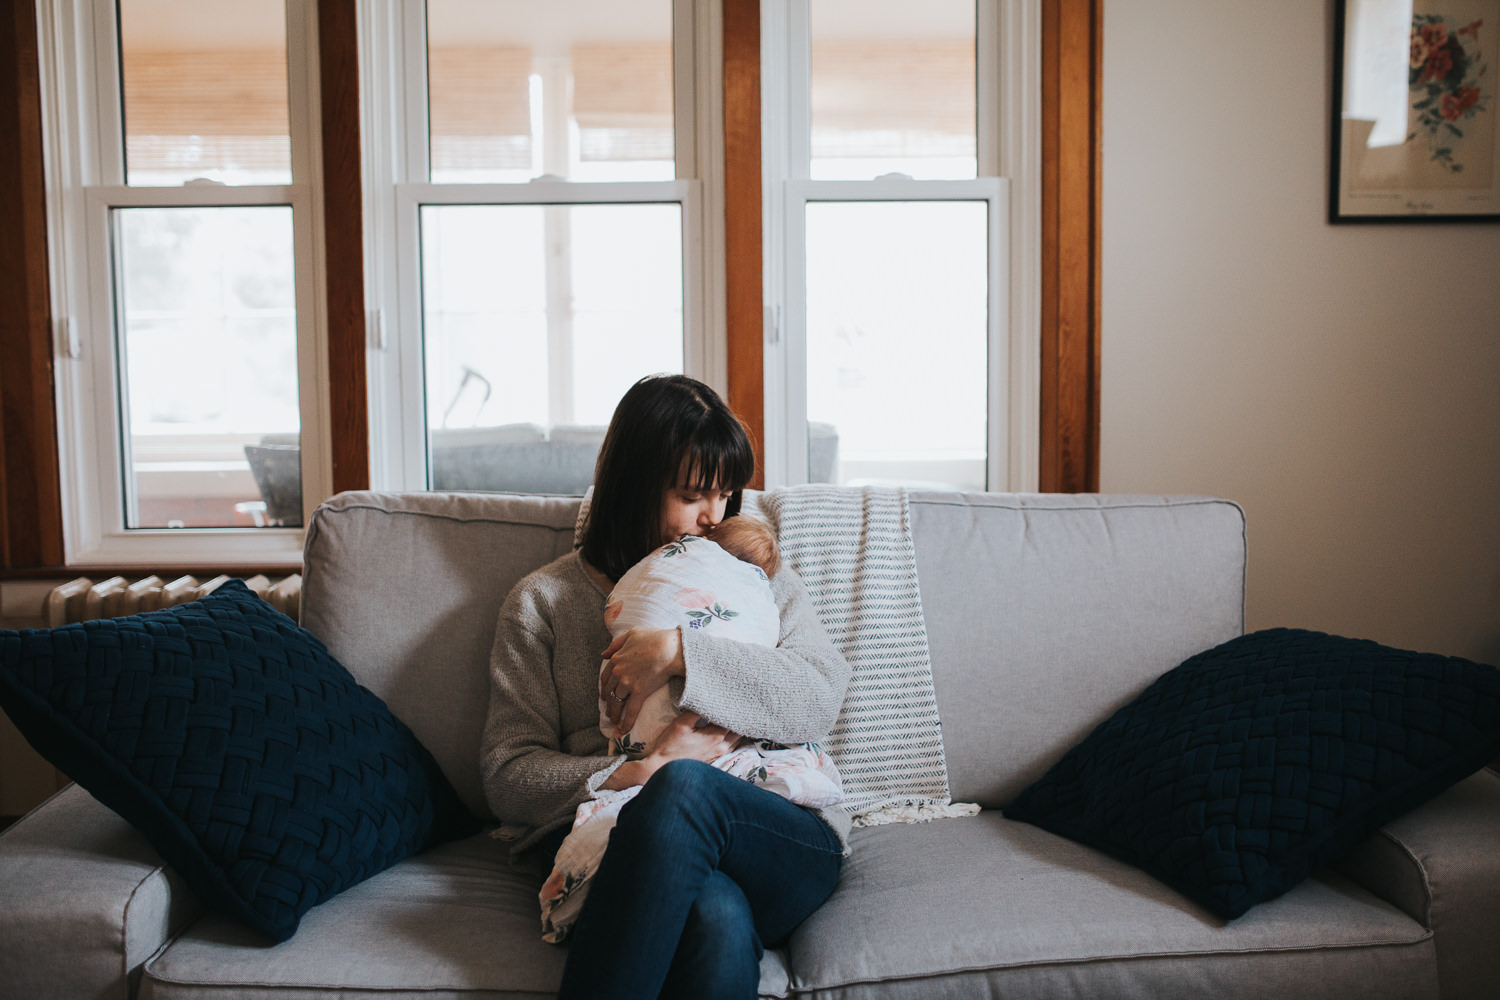 brunette mother holds 5 week old swaddled, sleeping baby girl while sitting on couch - Markham lifestyle photography